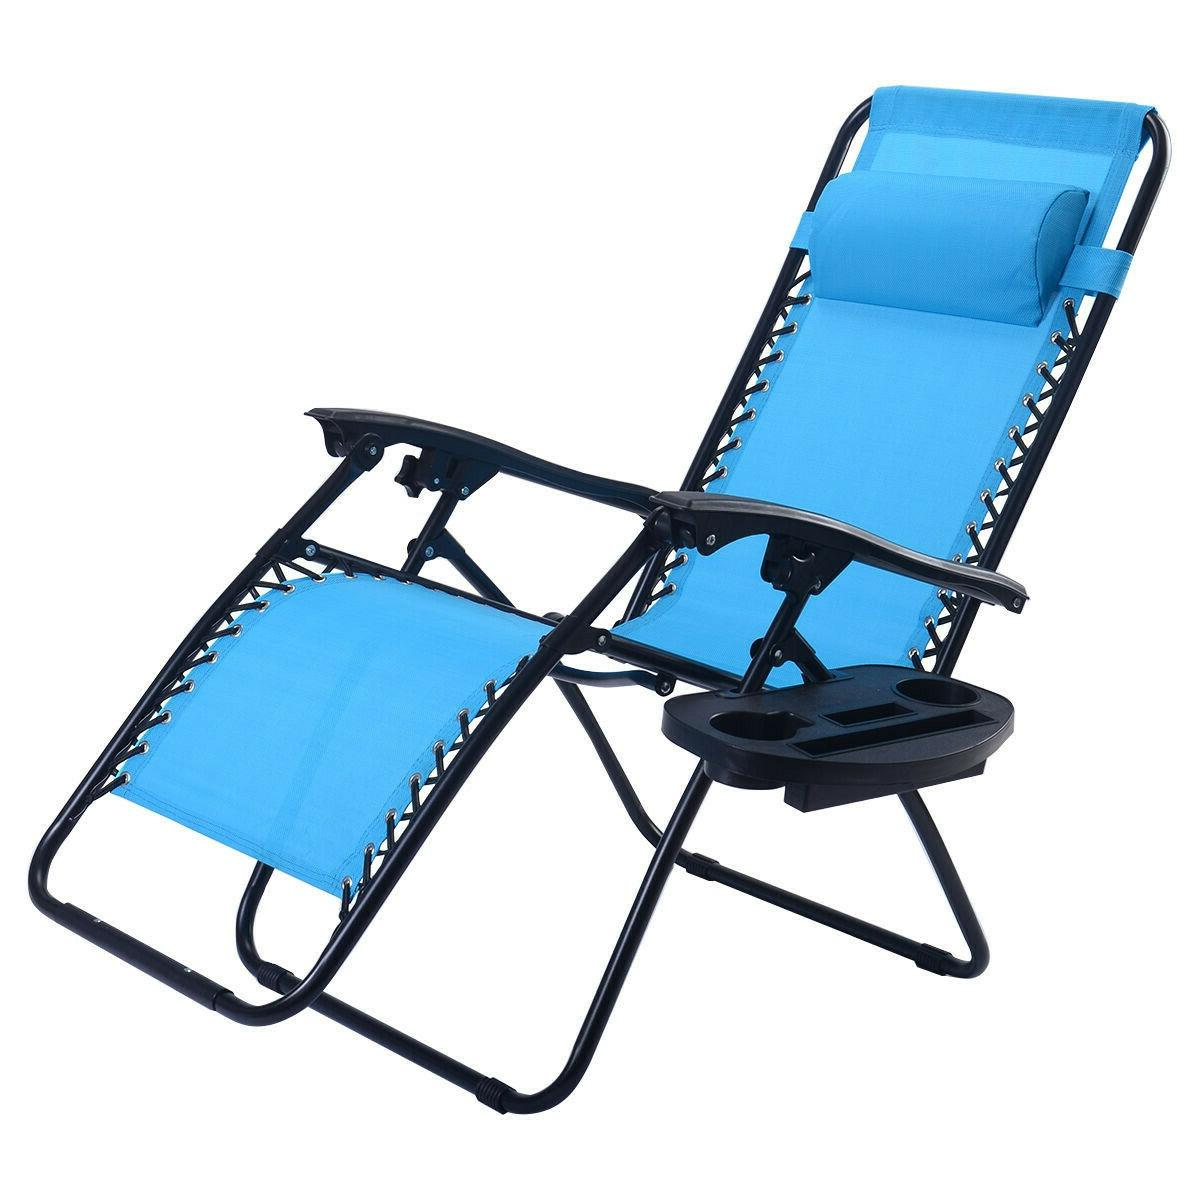 Patio Chairs Zero Gravity Chair Lounge Chaise Recliners Fold